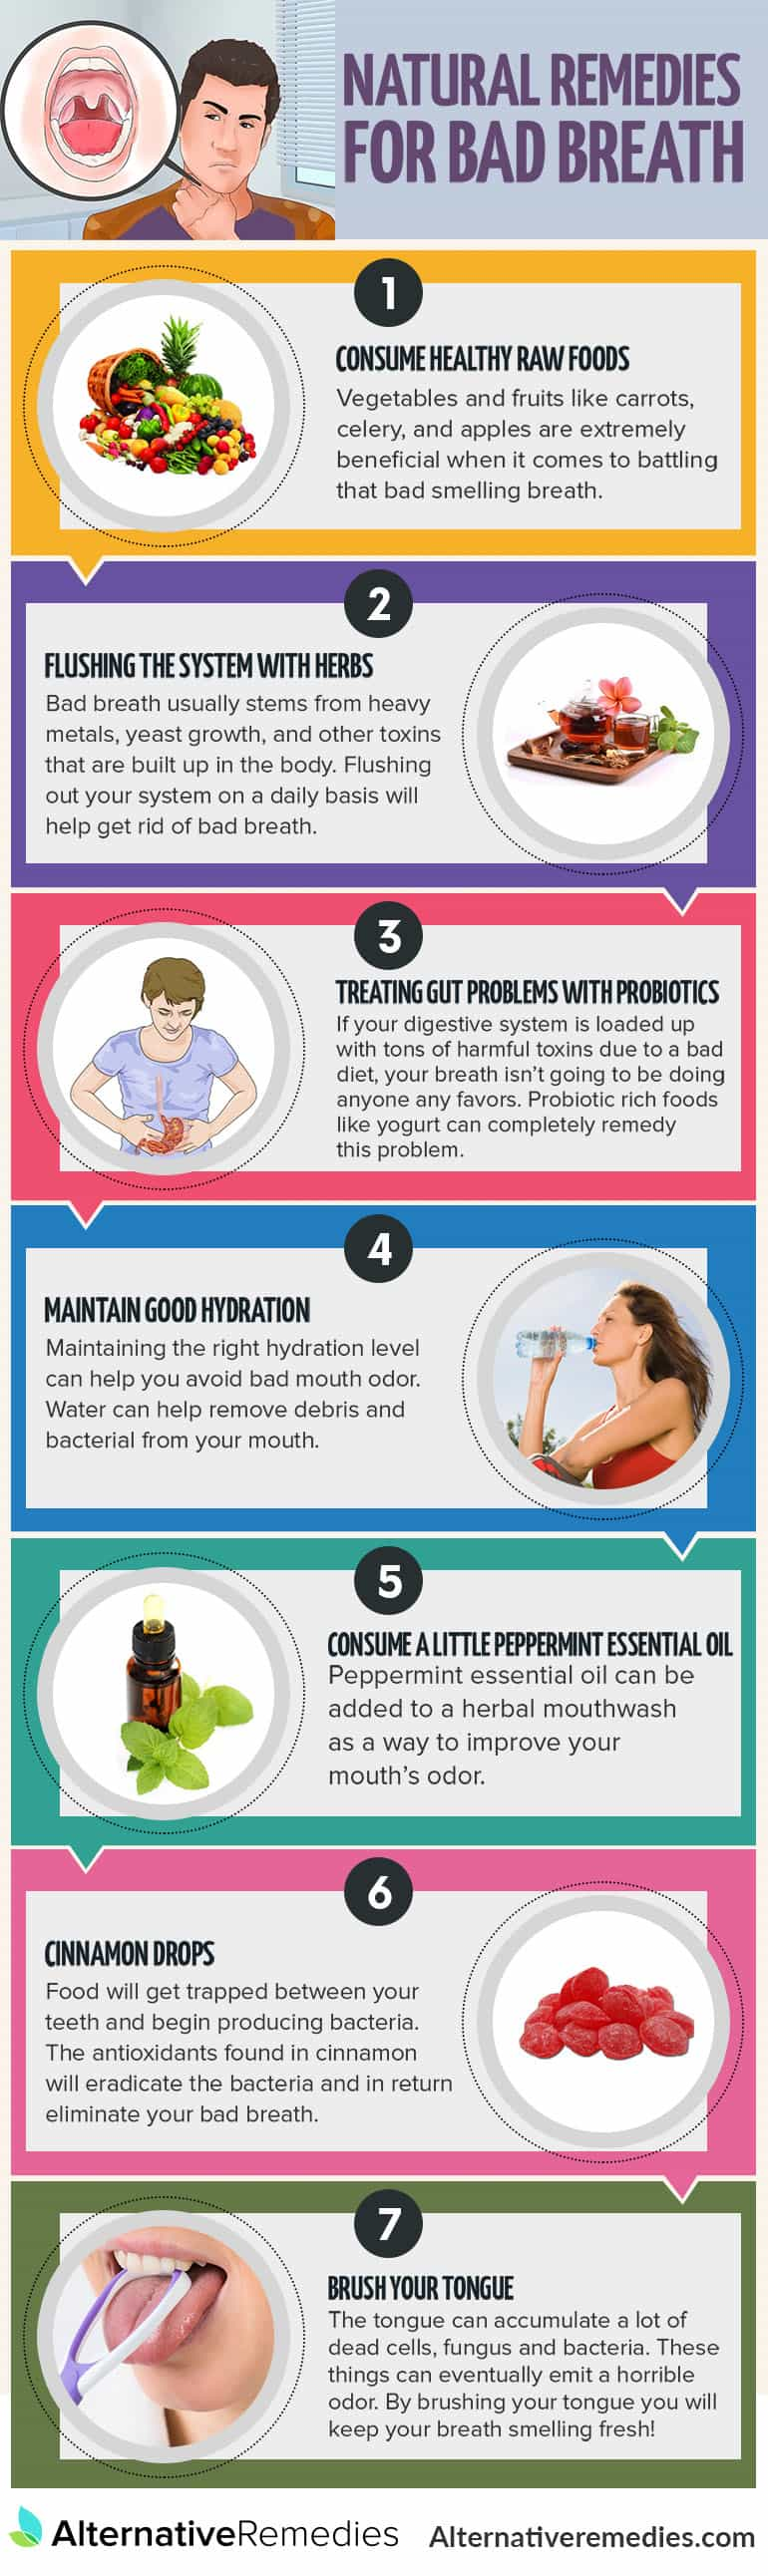 infrograhpic bad breath remedies